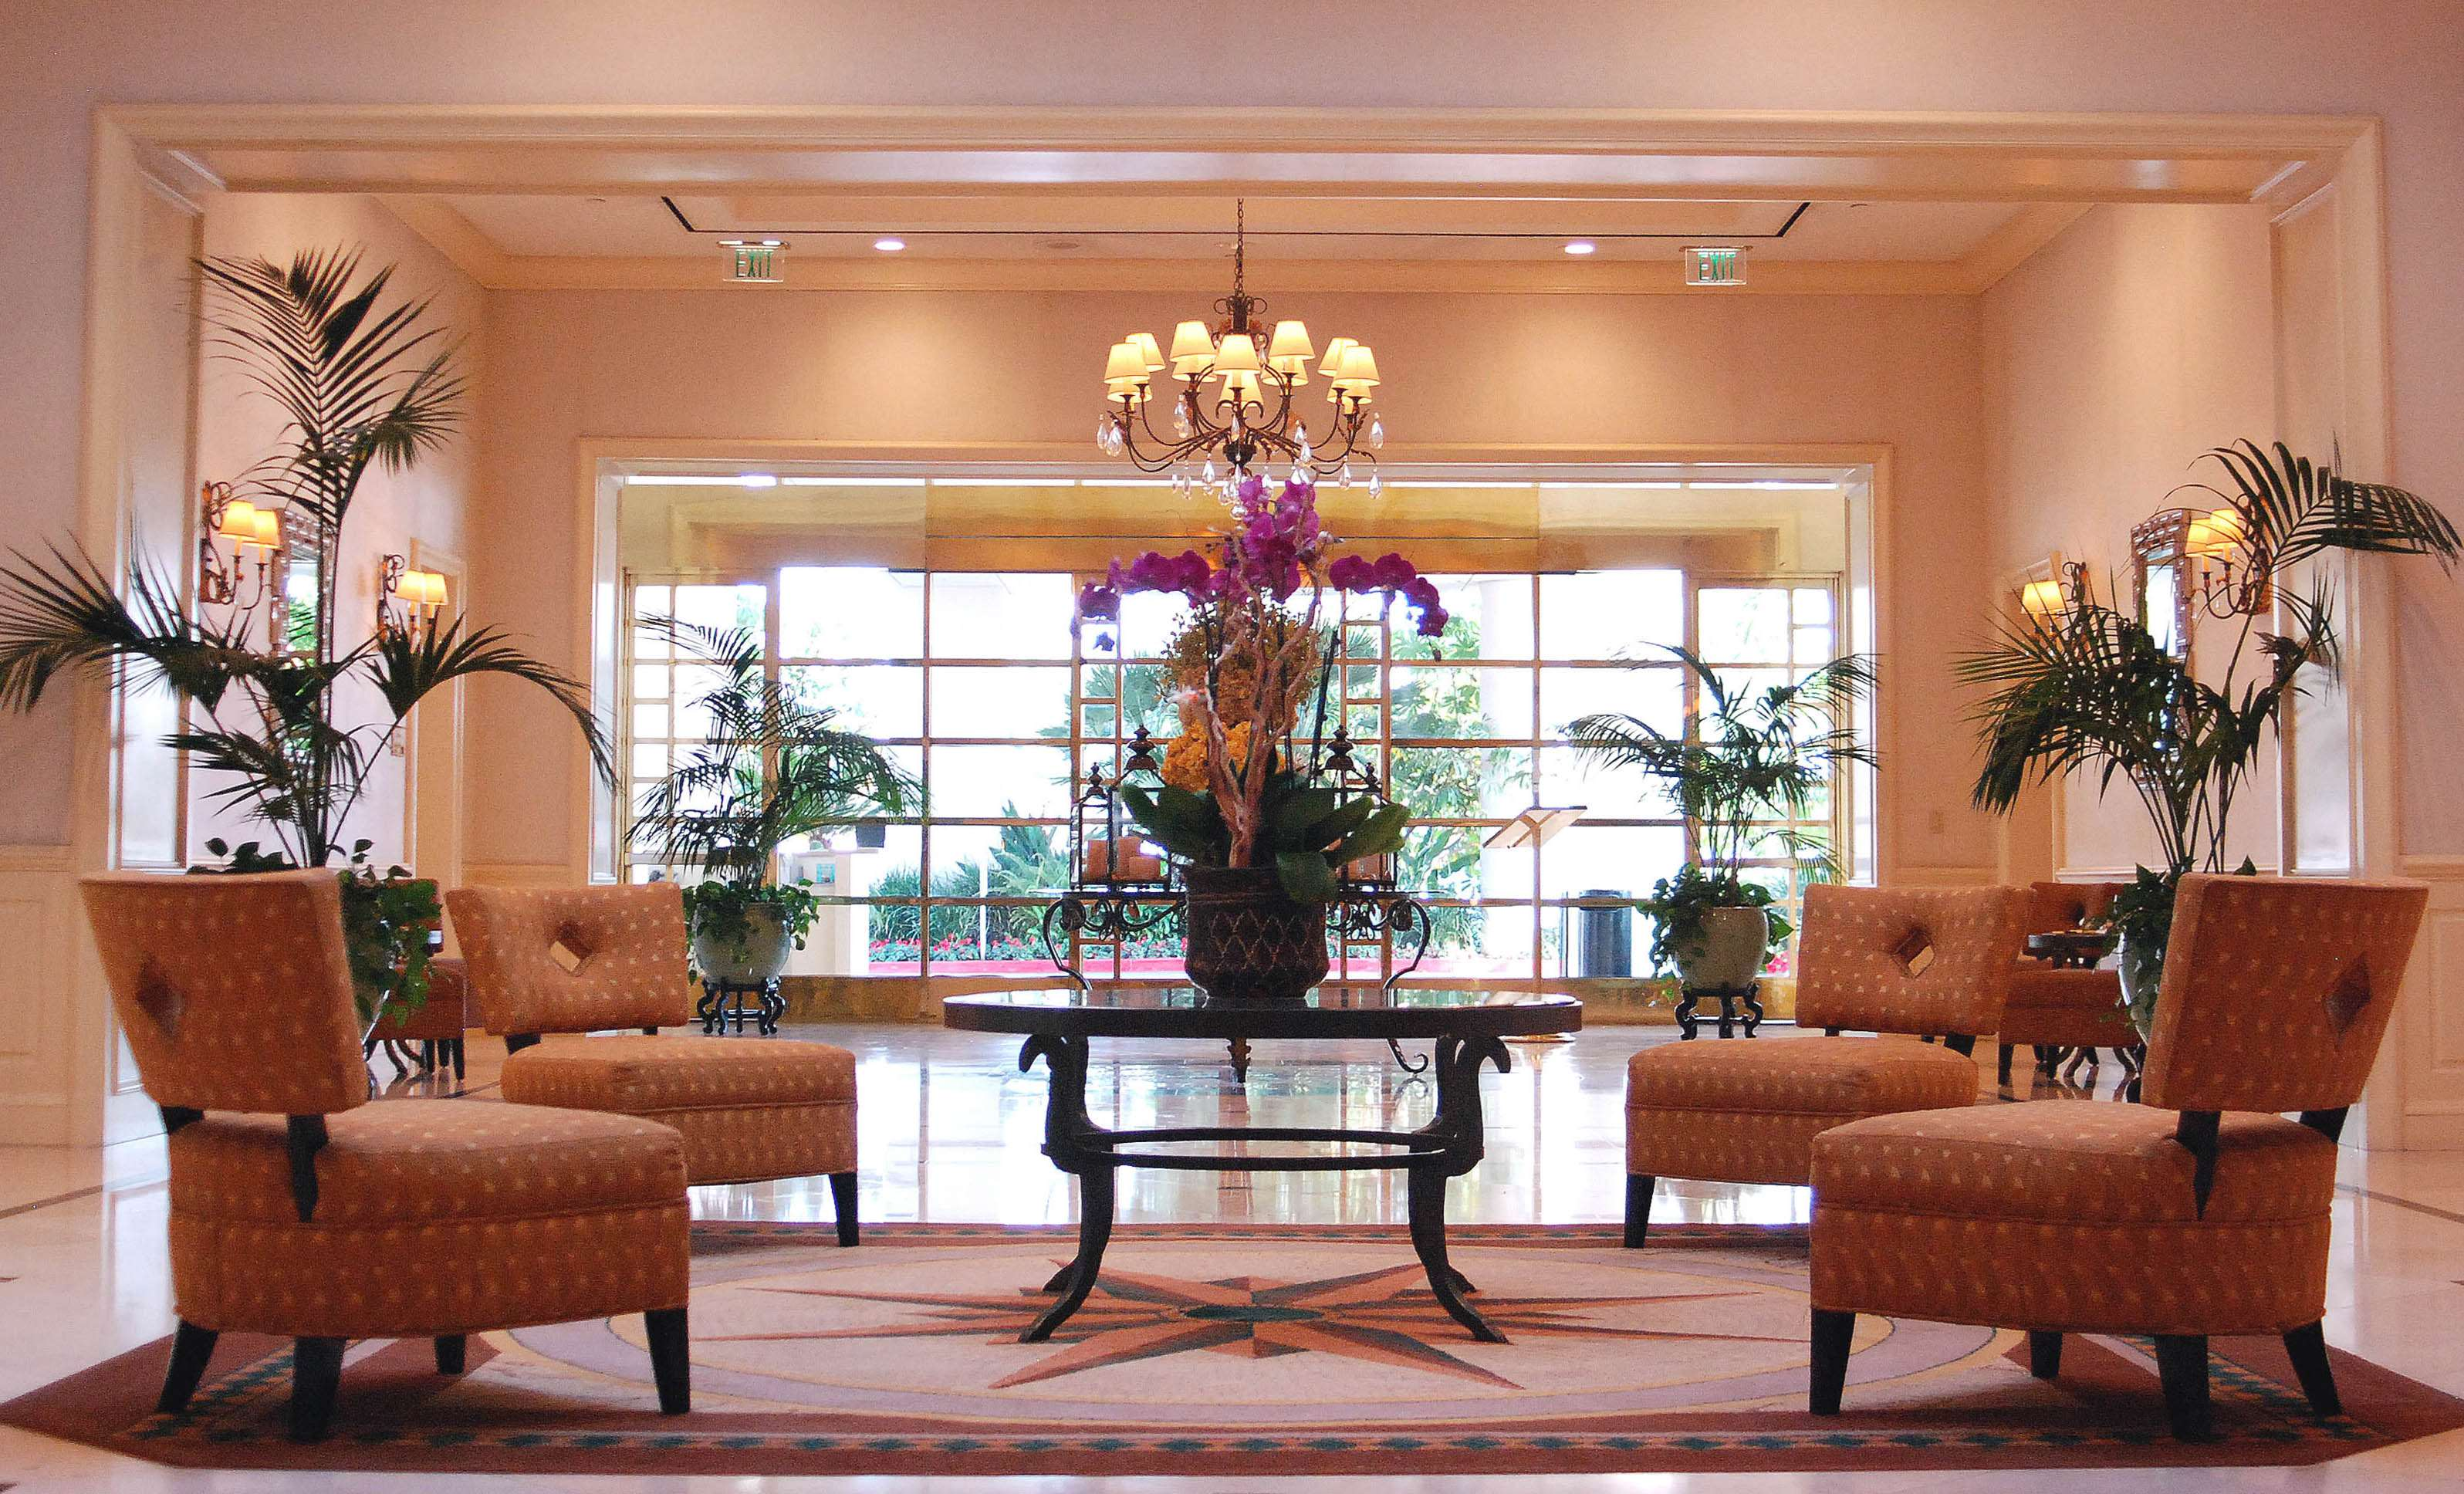 DoubleTree by Hilton Hotel Torrance - South Bay image 1